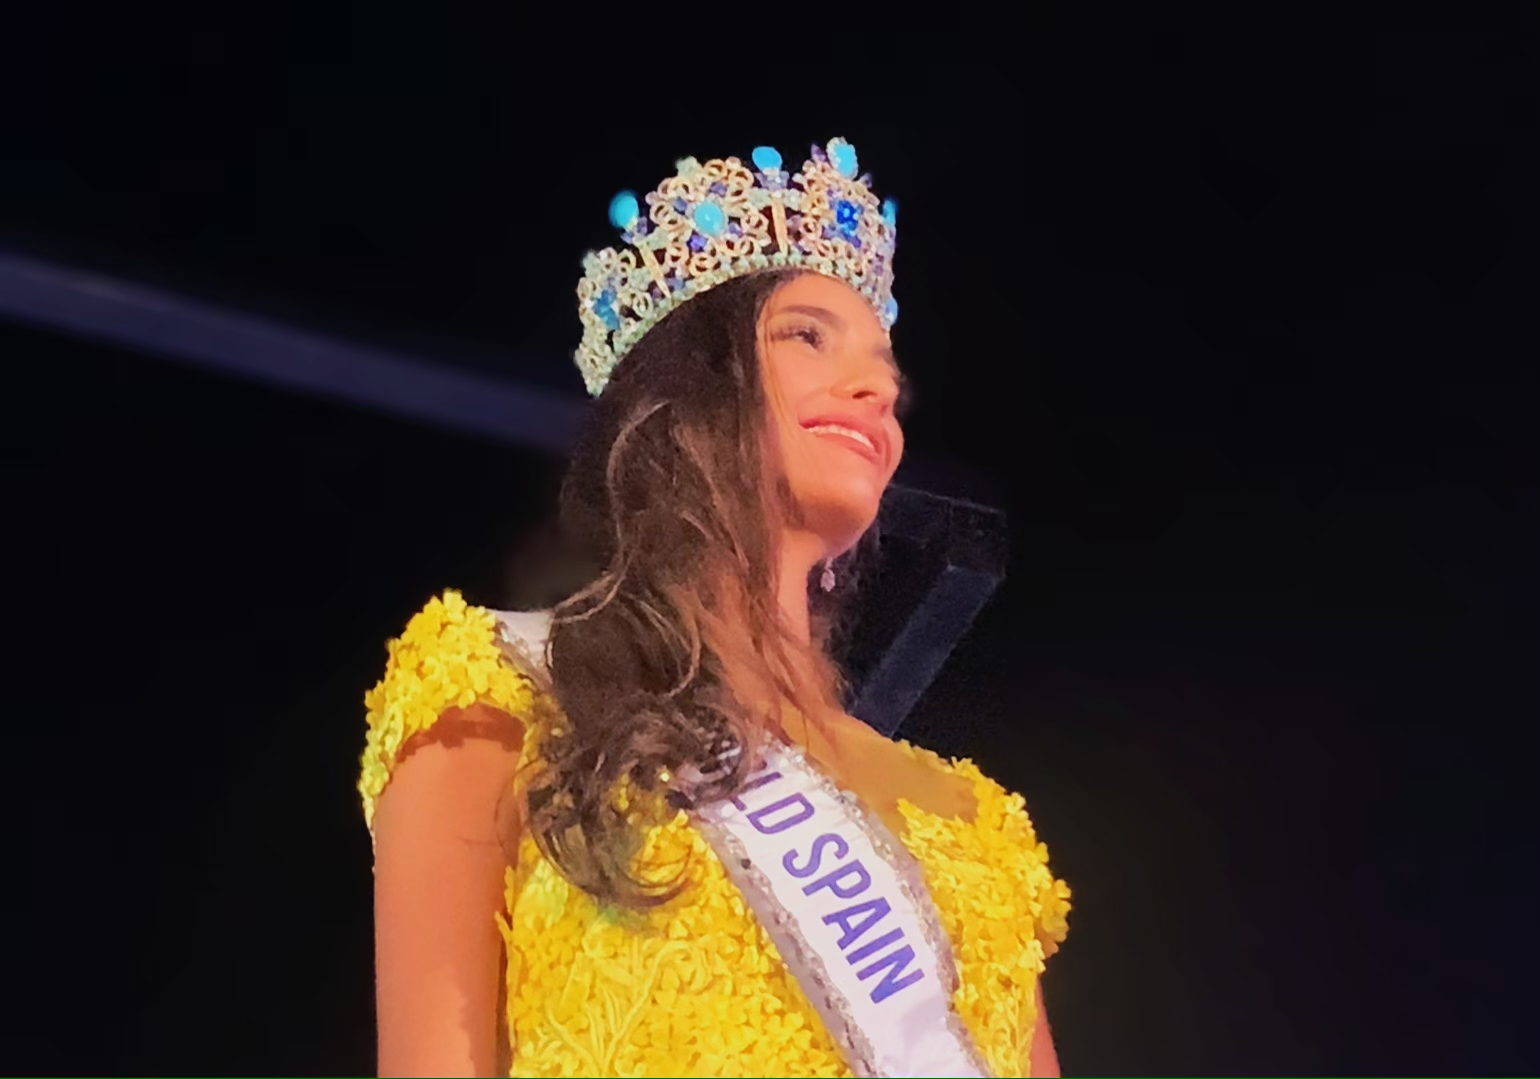 MISS WORLD SPAIN ES UNA ANDALUZA AMANTE DE LAS LEYES